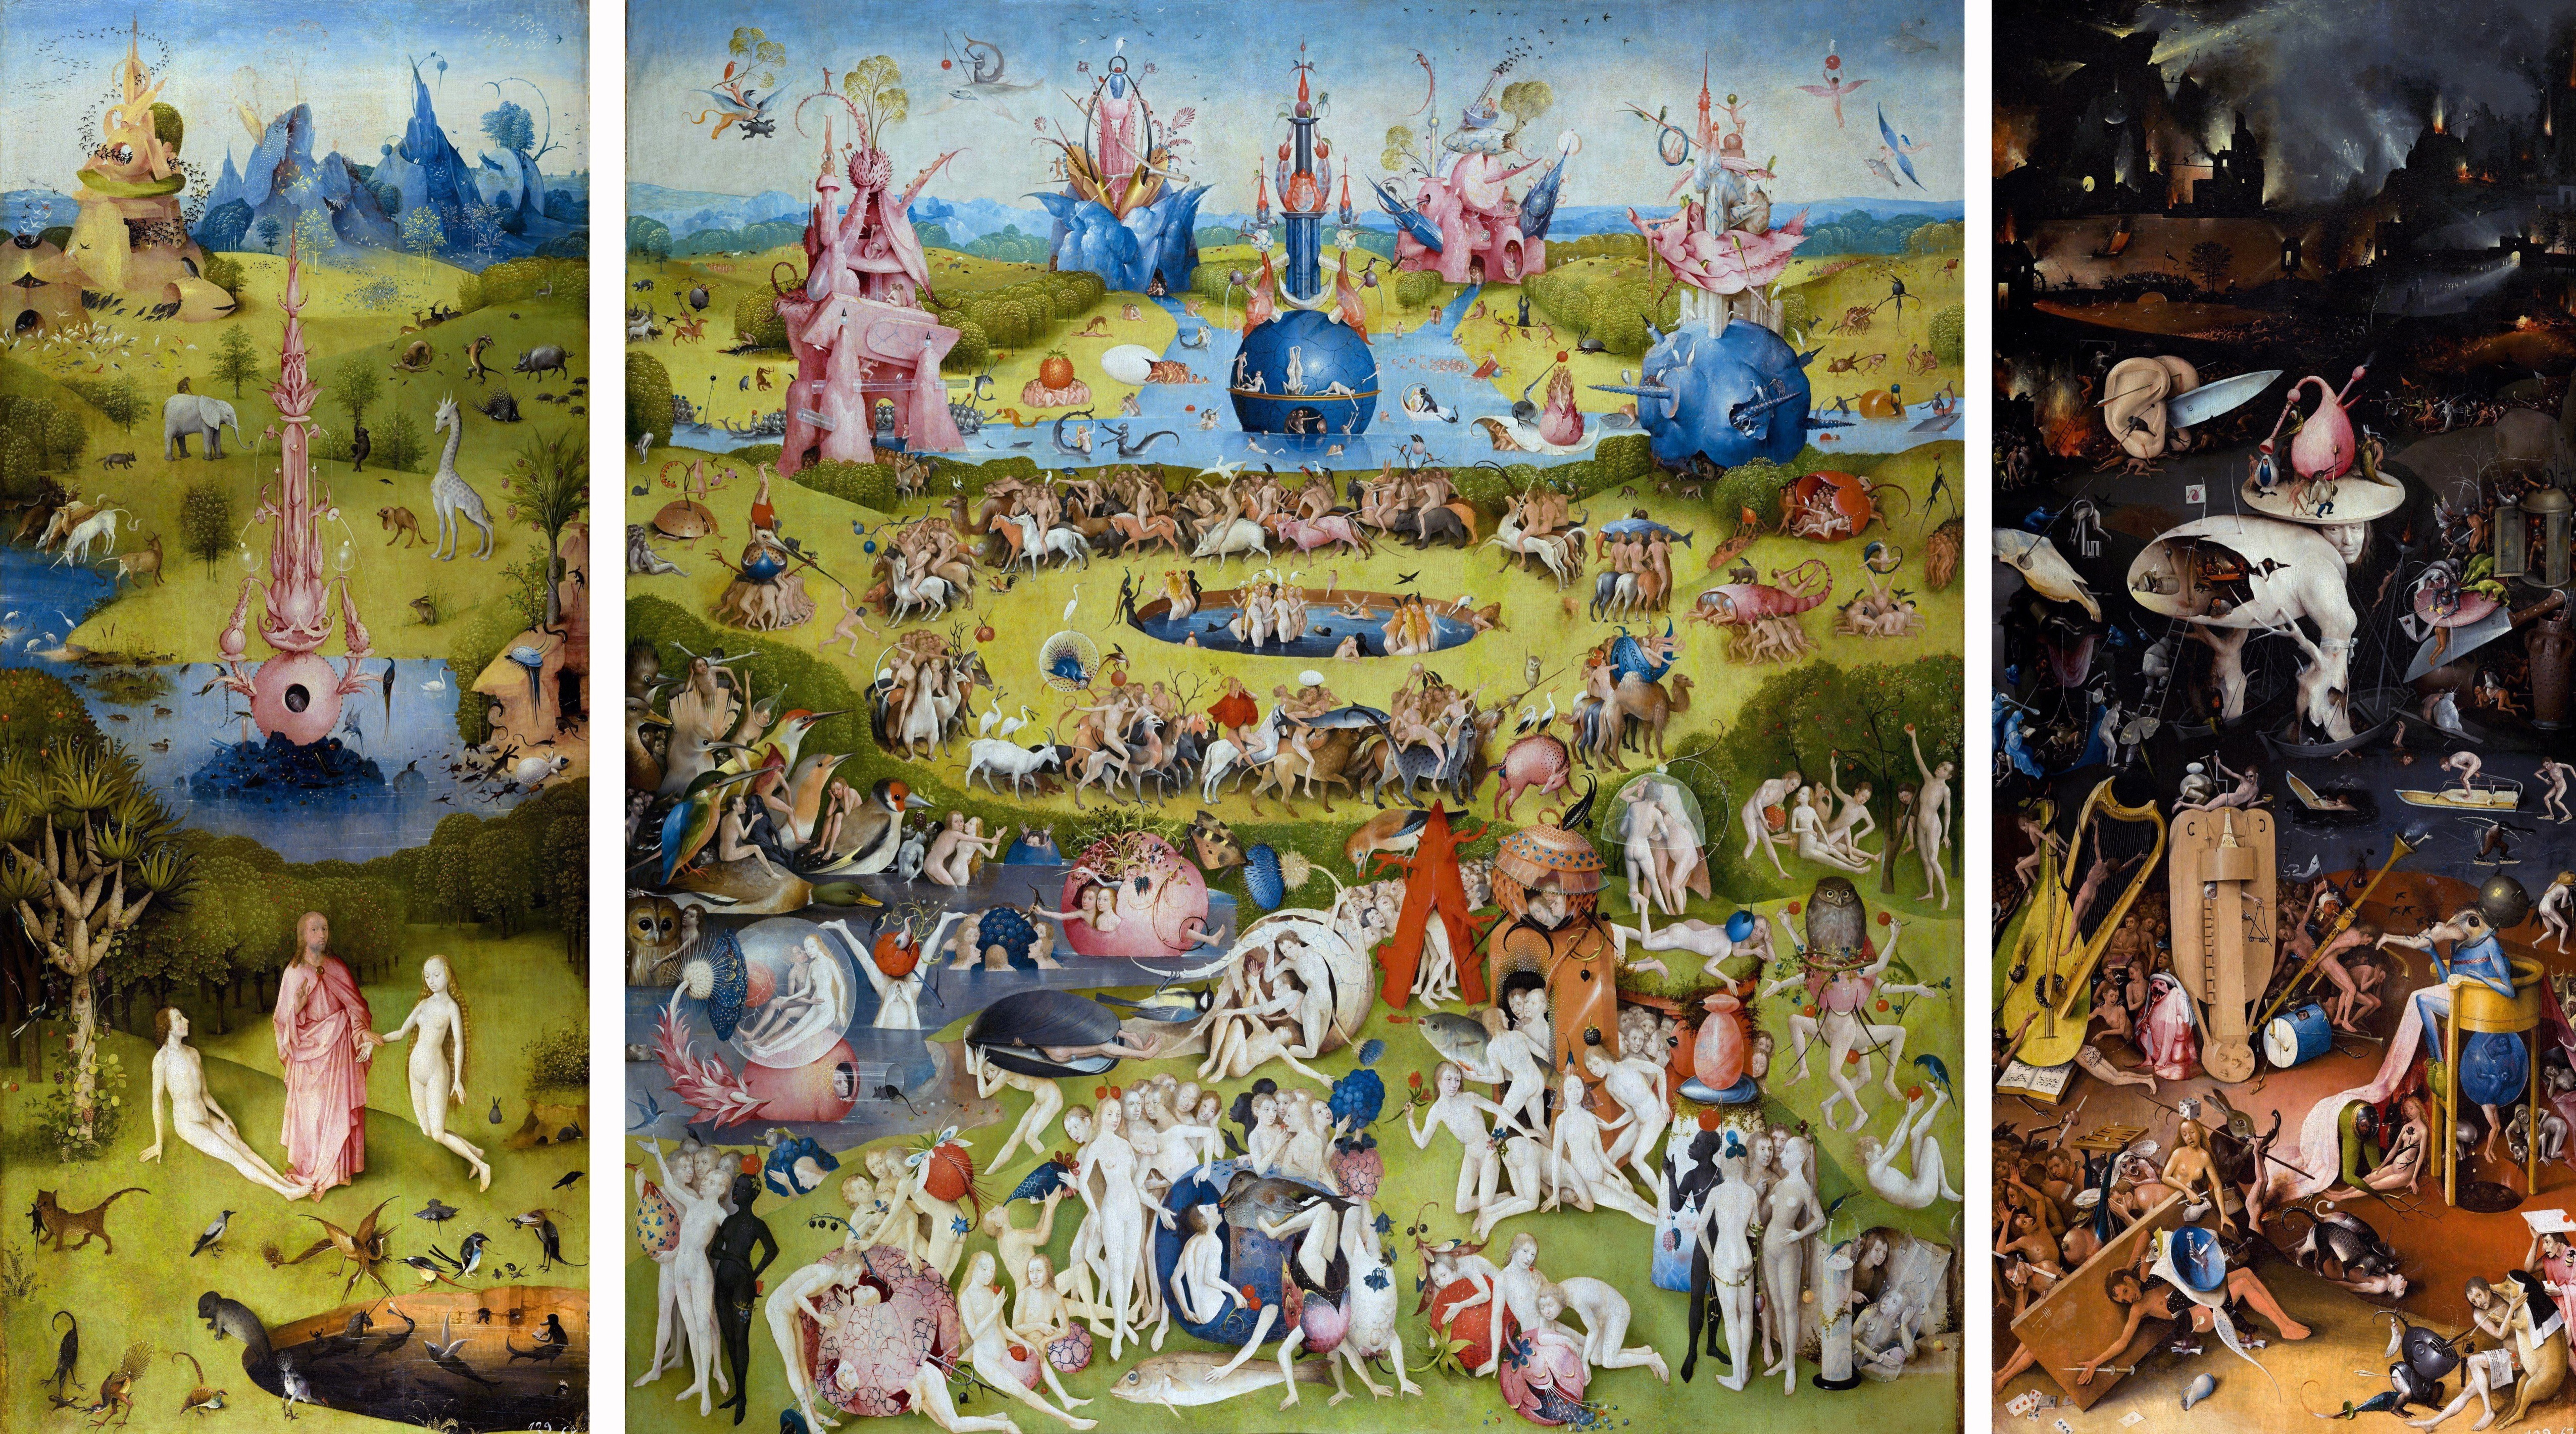 Painting titled 'The Garden of Earthly Delights' the modern title given to a triptych painted by the Early Netherlandish master Hieronymus Bosch (1450-1516). Dated 15th Century. (Photo by: Universal History Archive/UIG via Getty Images)